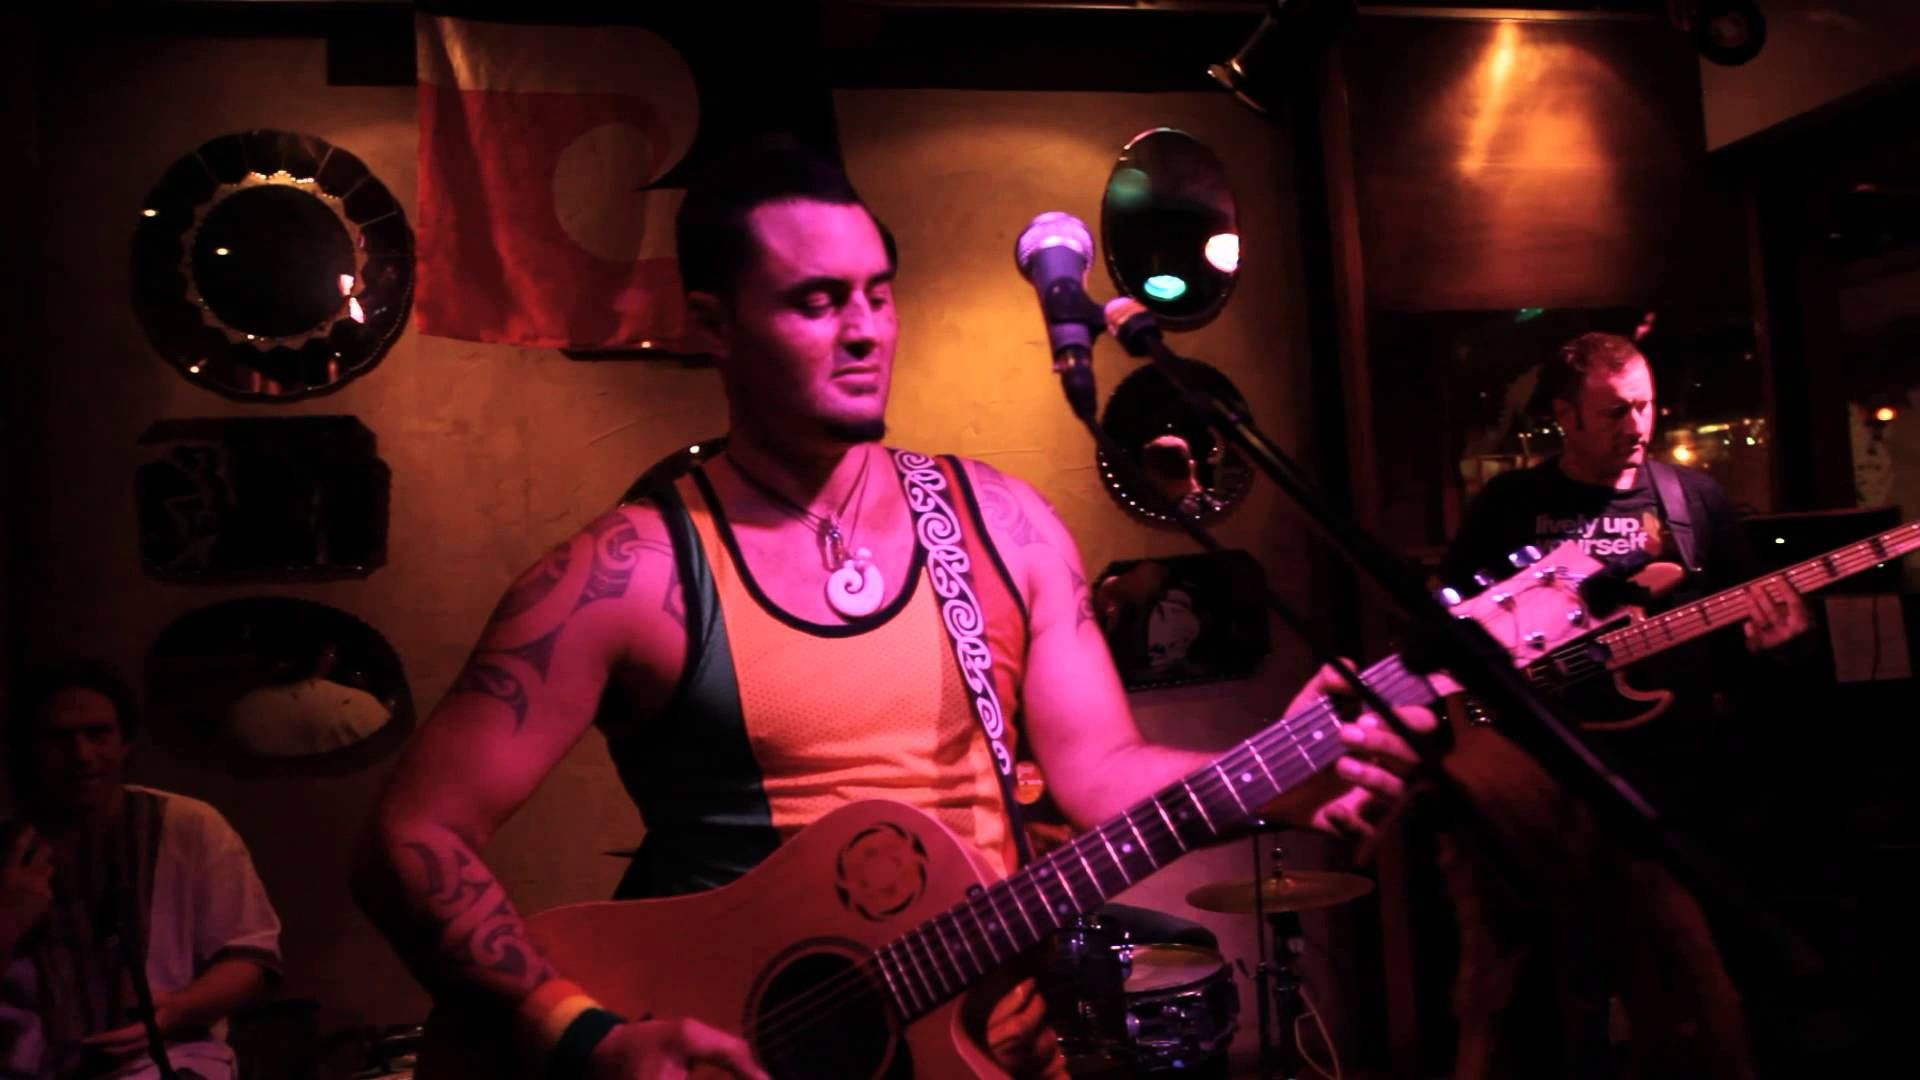 """Mint Cafe & Bar """"The Hook""""  Date: 20th of March Time: 8pm Location: Mint Cafe & Bar @ 1-5 Maria Place, Whanganui.  Tonight Matiu Te Huki with Michael Franklin-Browne (drums) and David Griffith (bass) will be performing """"The Hook"""" at the Mint Cafe & Bar. """"The Hook"""" performance showcases a strong Maori flavour using Haka, Chants and Traditional Instruments. This should be a great show, contact the Mint Cafe & Bar on (06) 348 4808 for further information."""